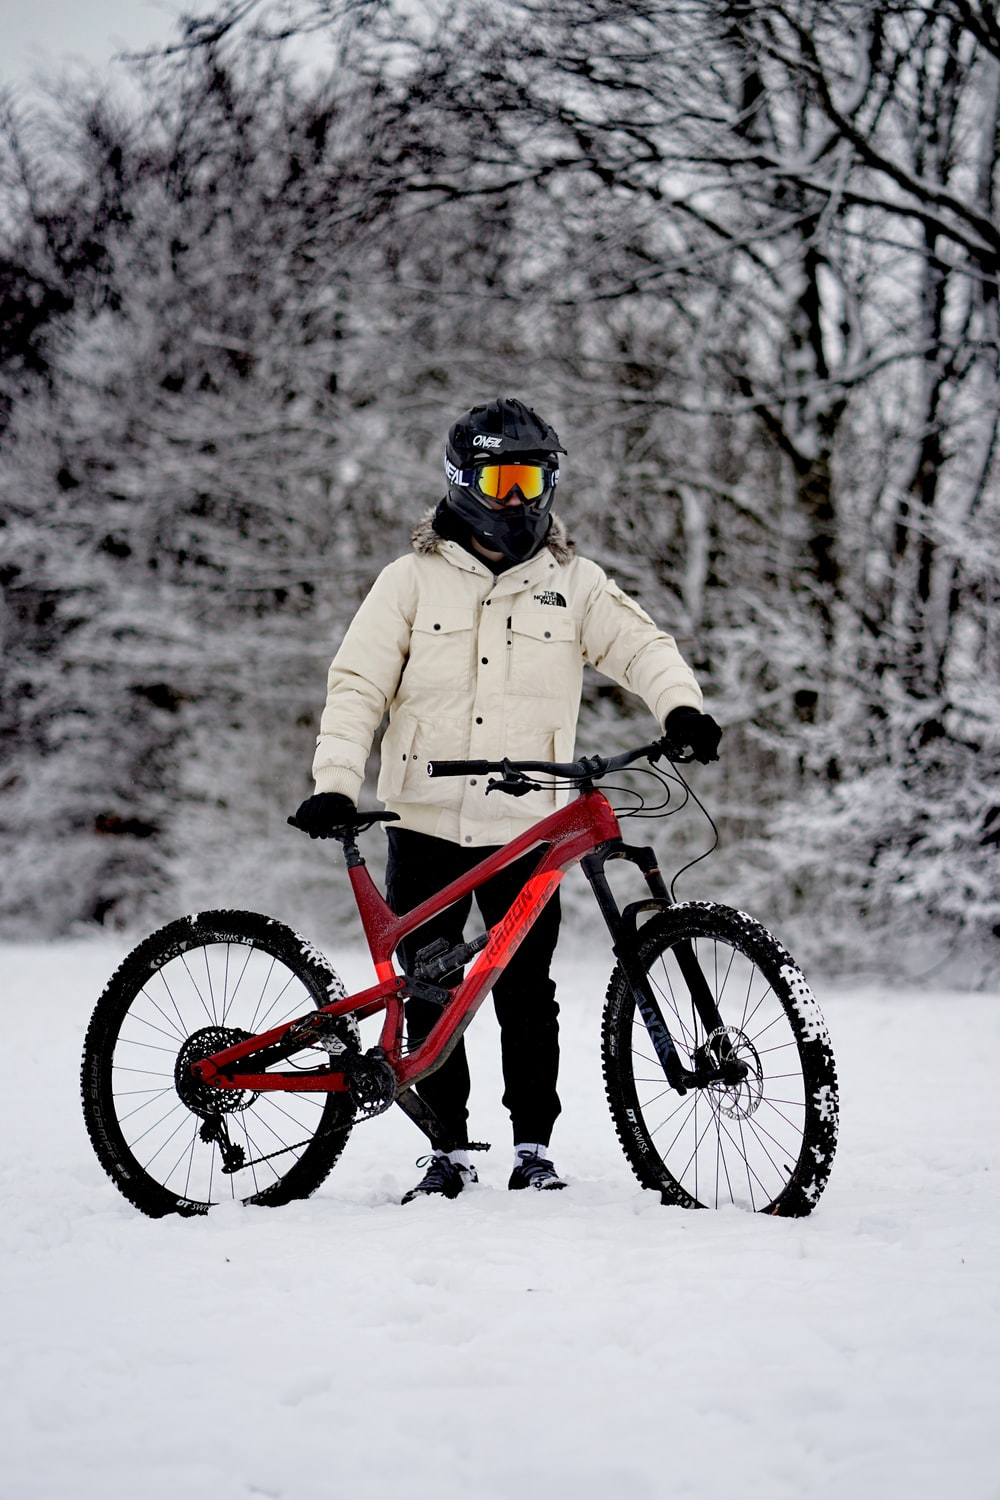 person in brown jacket riding red mountain bike on snow covered ground during daytime